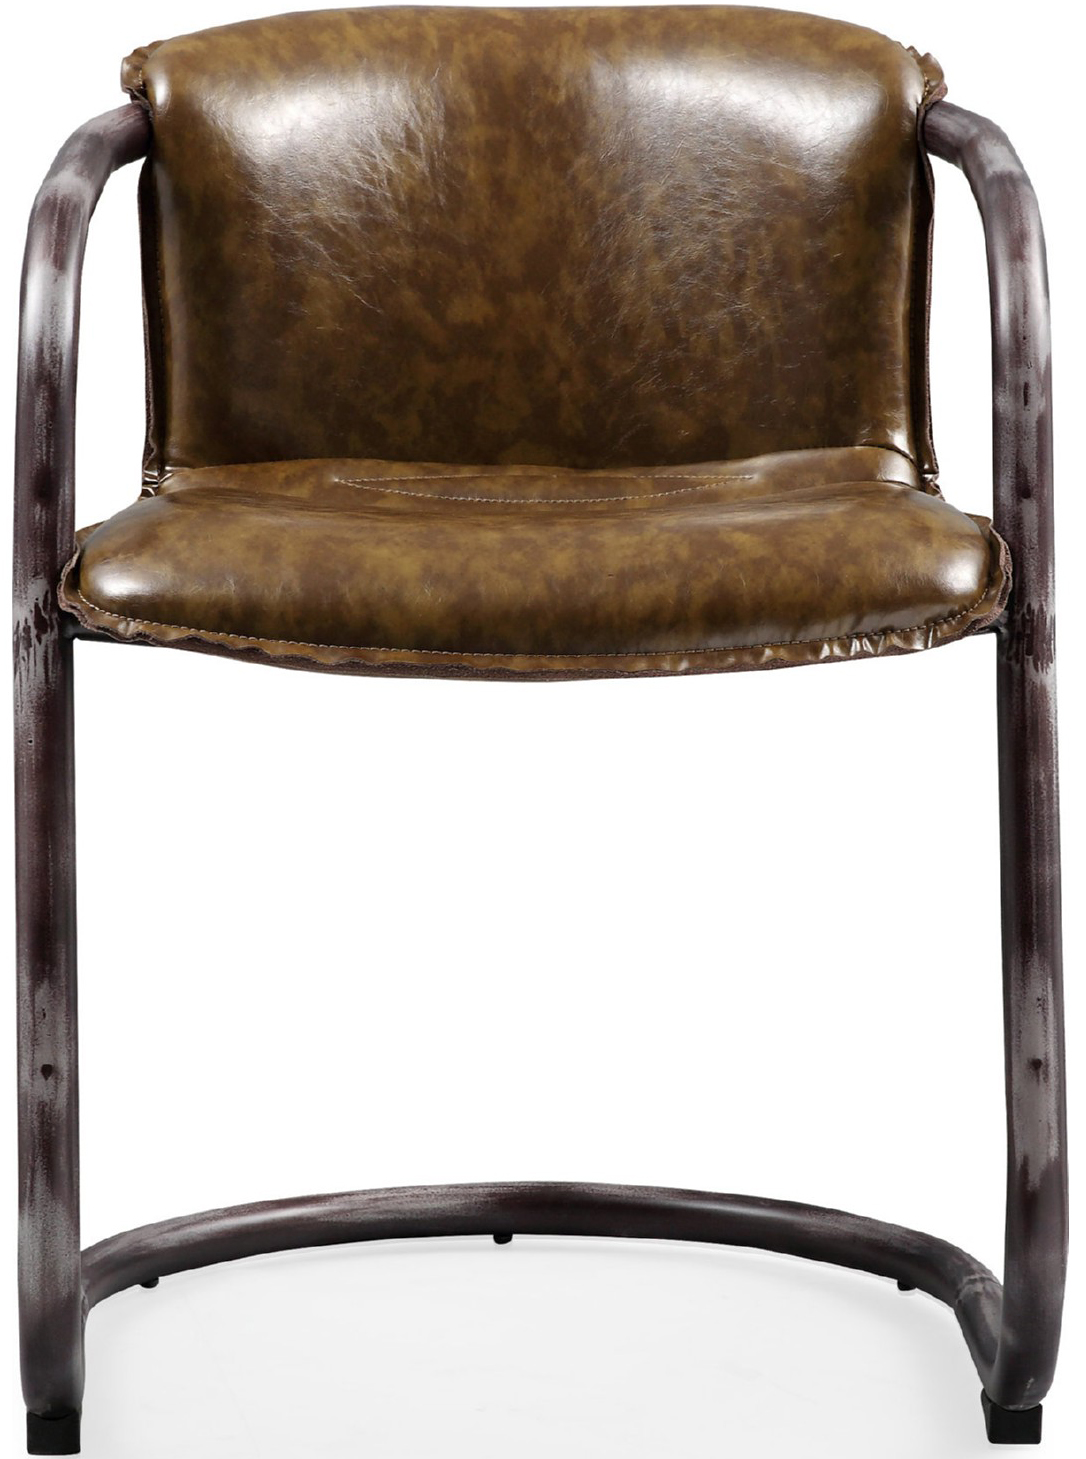 the gear dining chair in vintage cognac